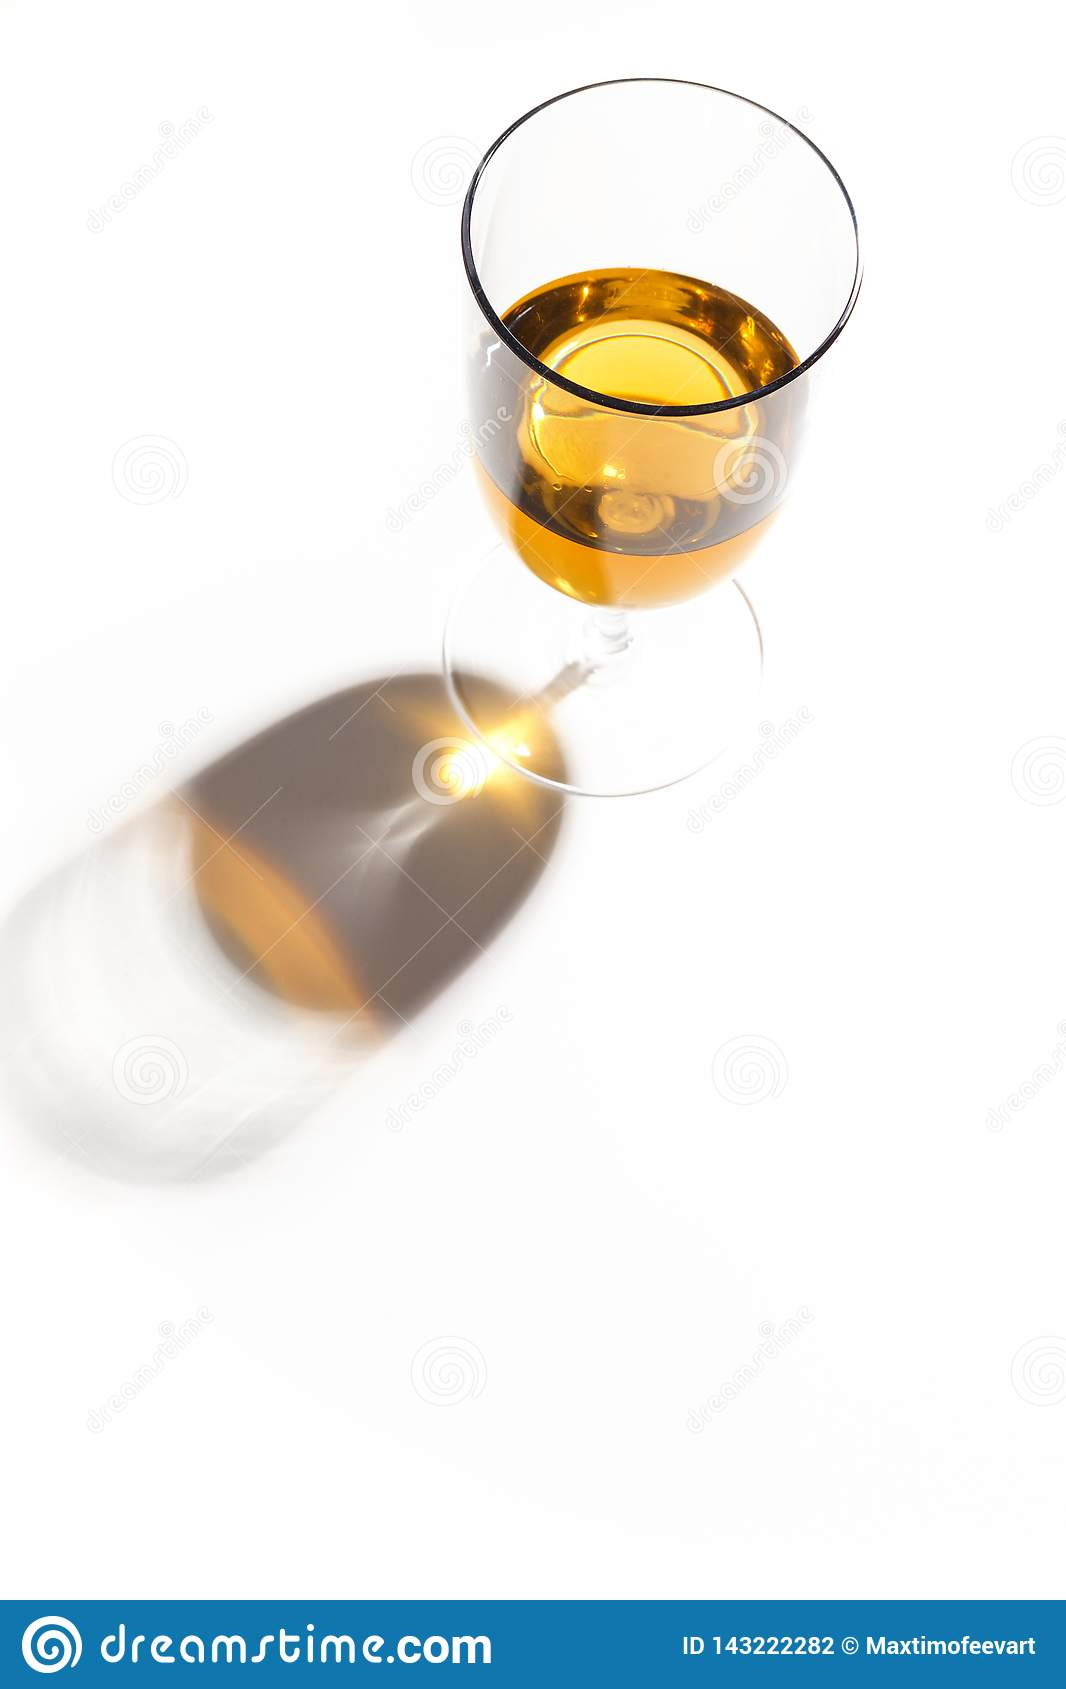 Glass glasses with drinks of different colors on a white background. Top view. The concept of an alcoholic cocktail